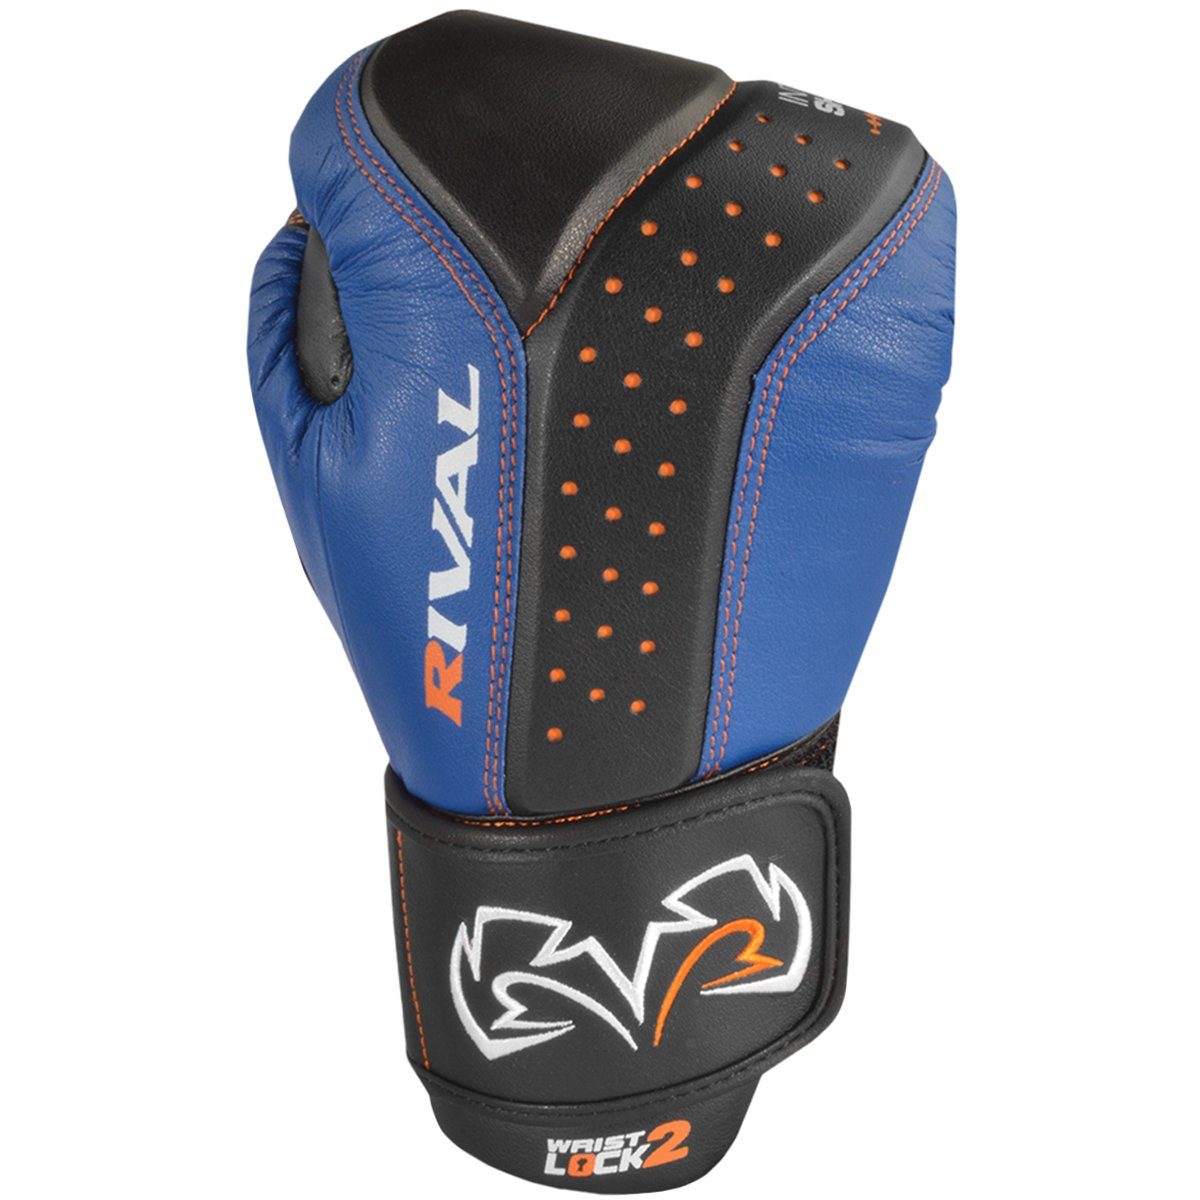 RIVAL BOXING GLOVES (RB10 INTELLI-SHOCK BAG GLOVES) (BLACK/BLUE, MEDIUM) by Rival (Image #3)